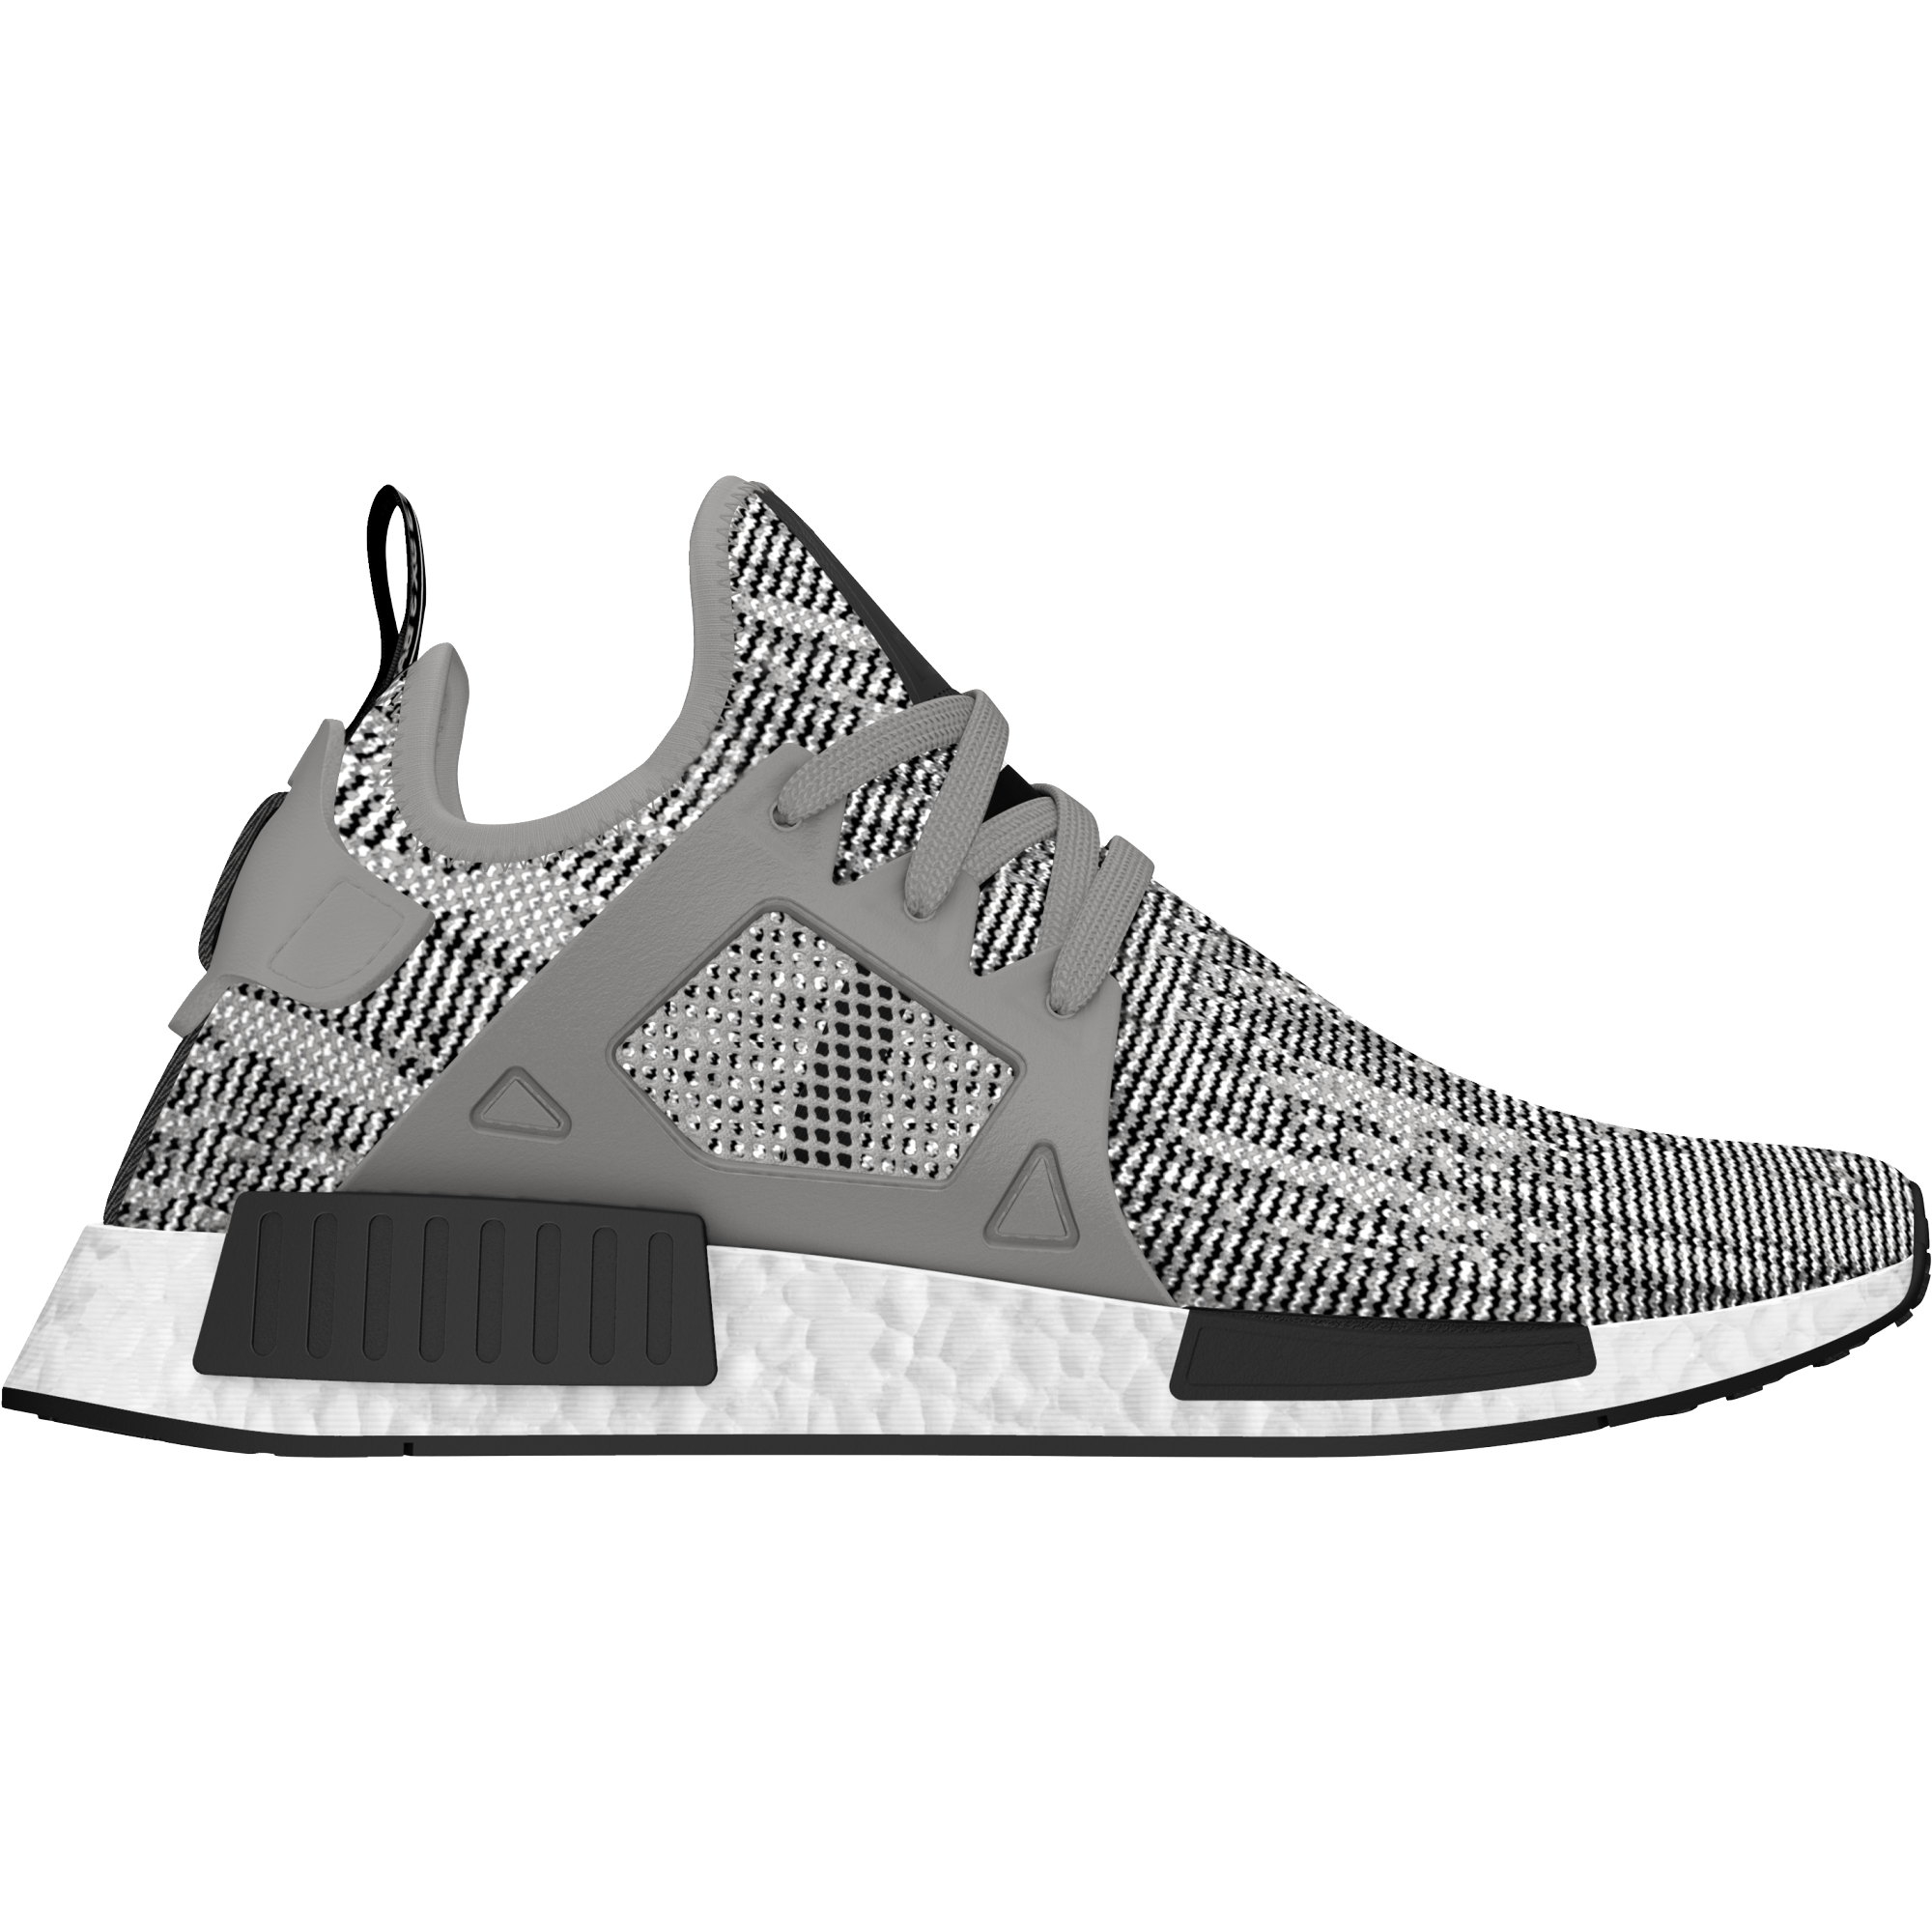 adidas Originals NMD XR1 OG